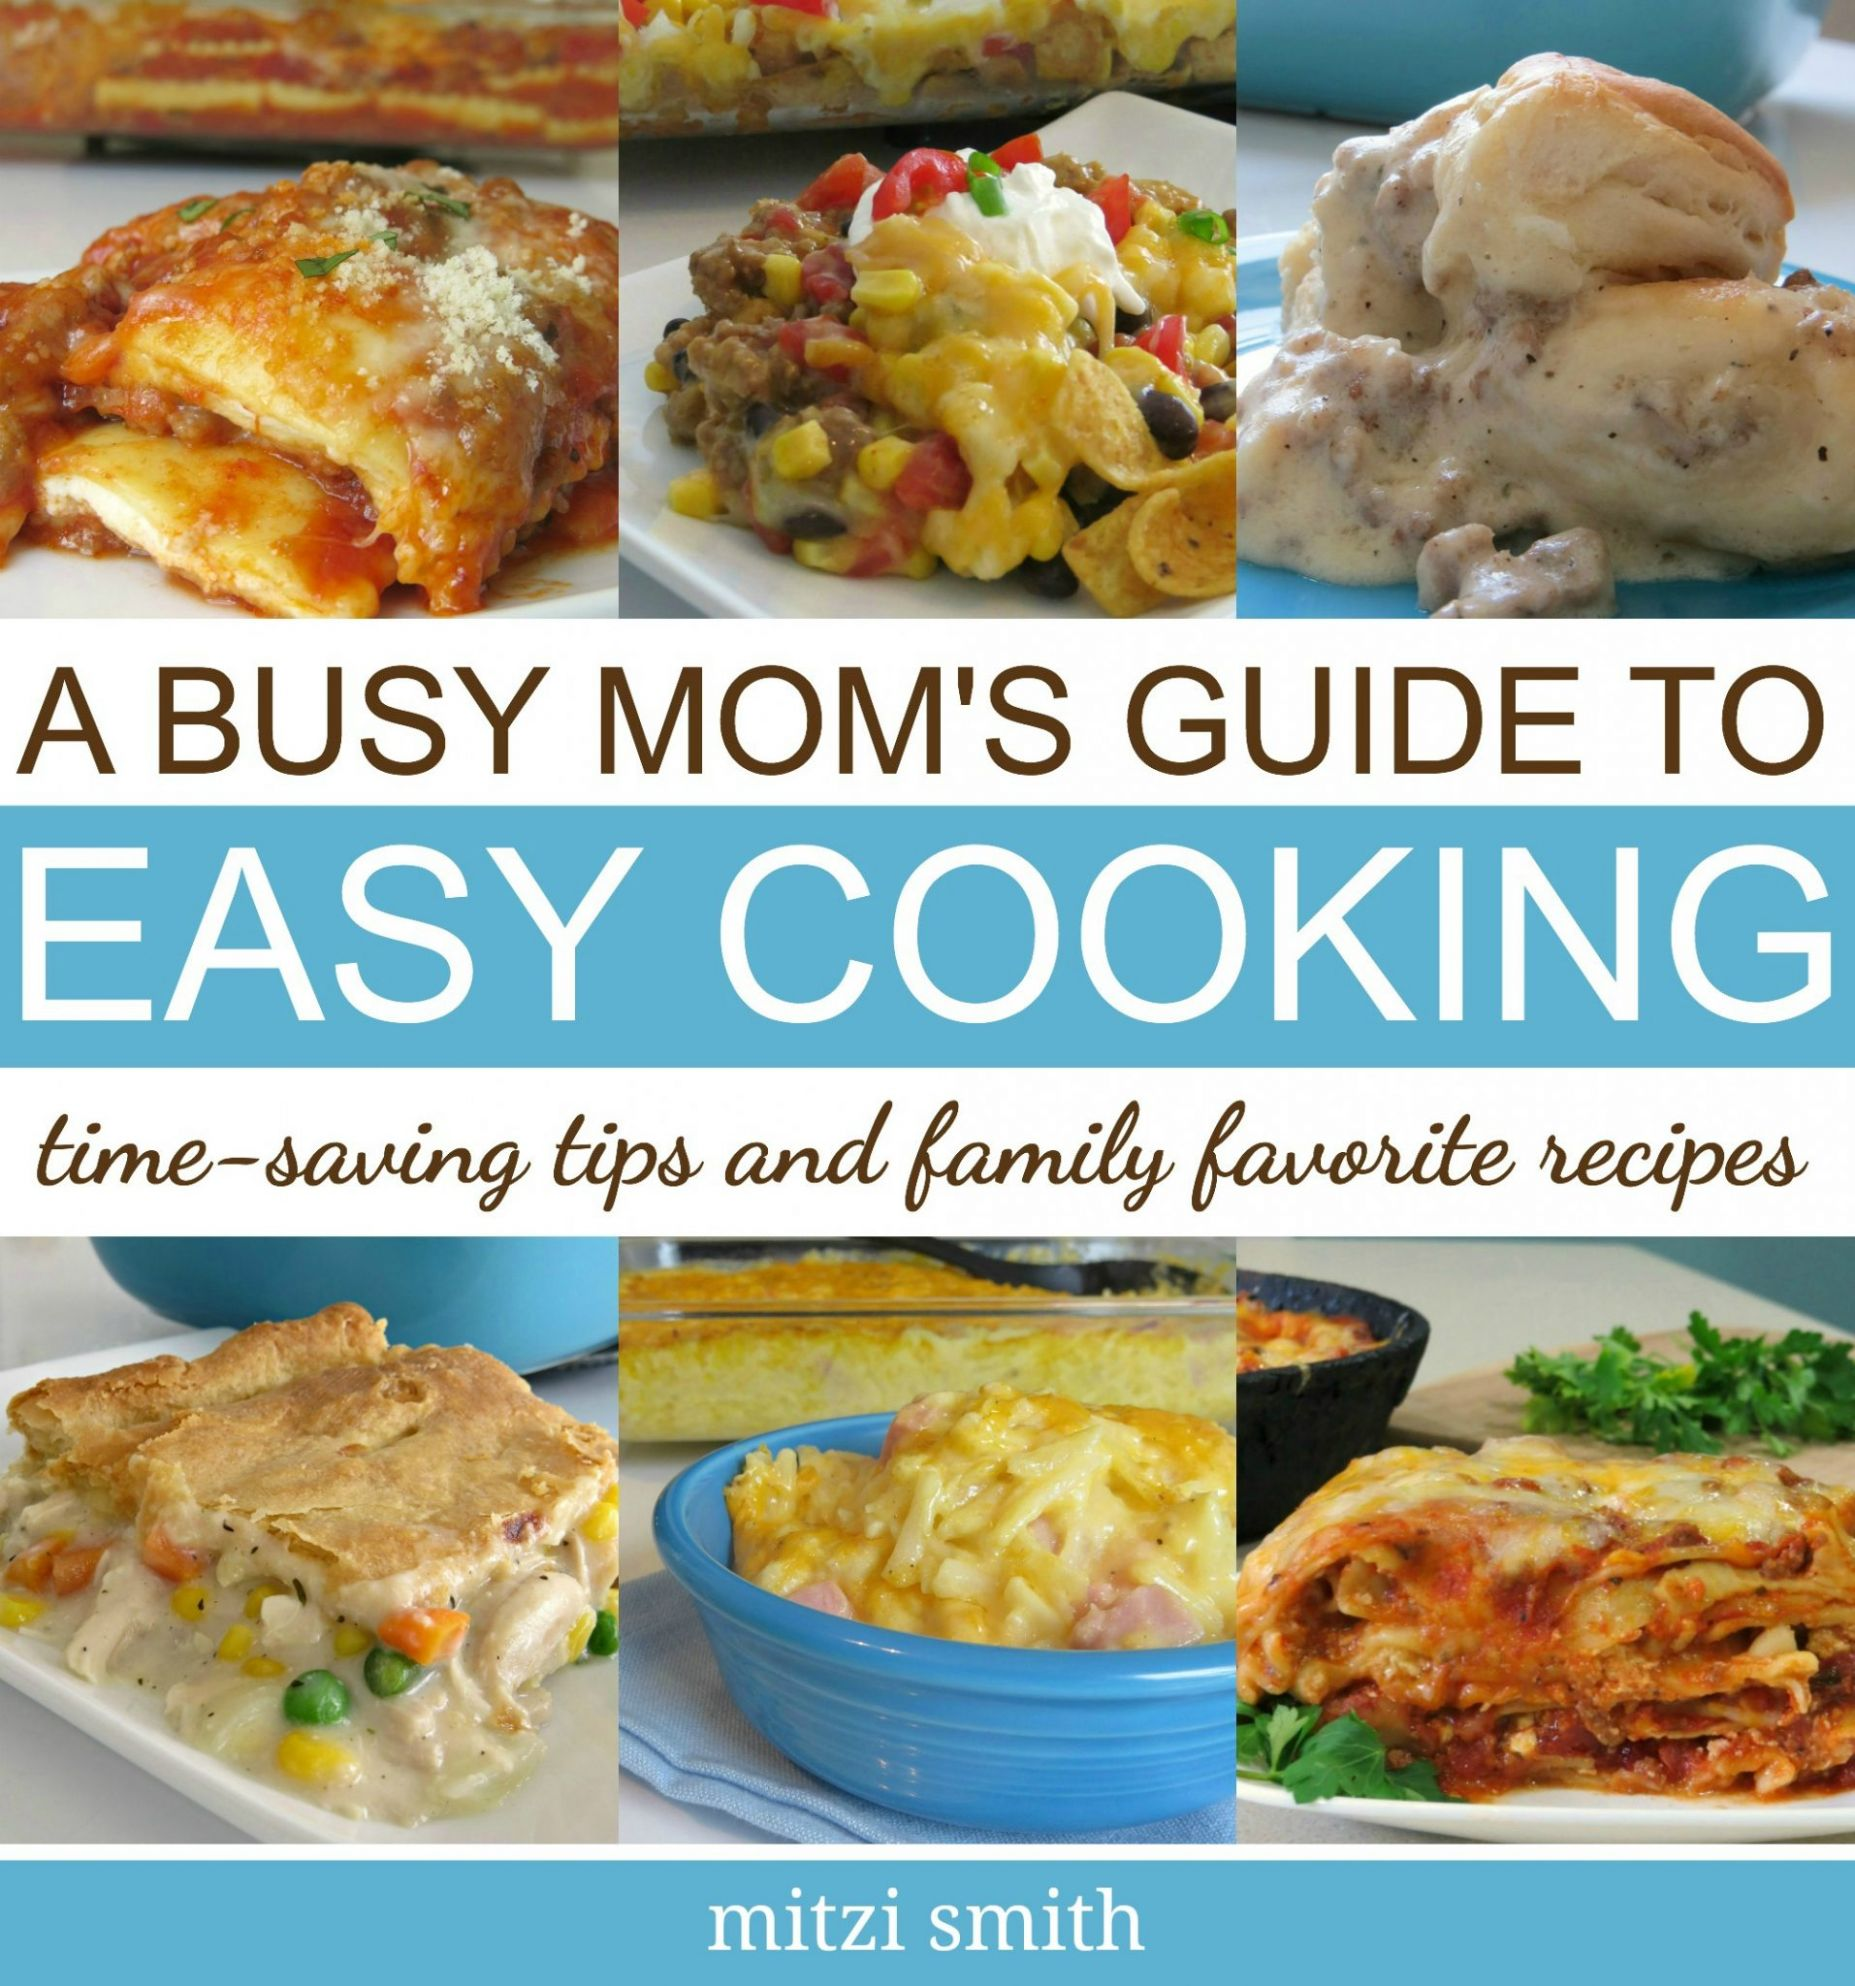 Quick Easy Cooking Guide - Written Reality - Cooking Recipes Quick And Easy